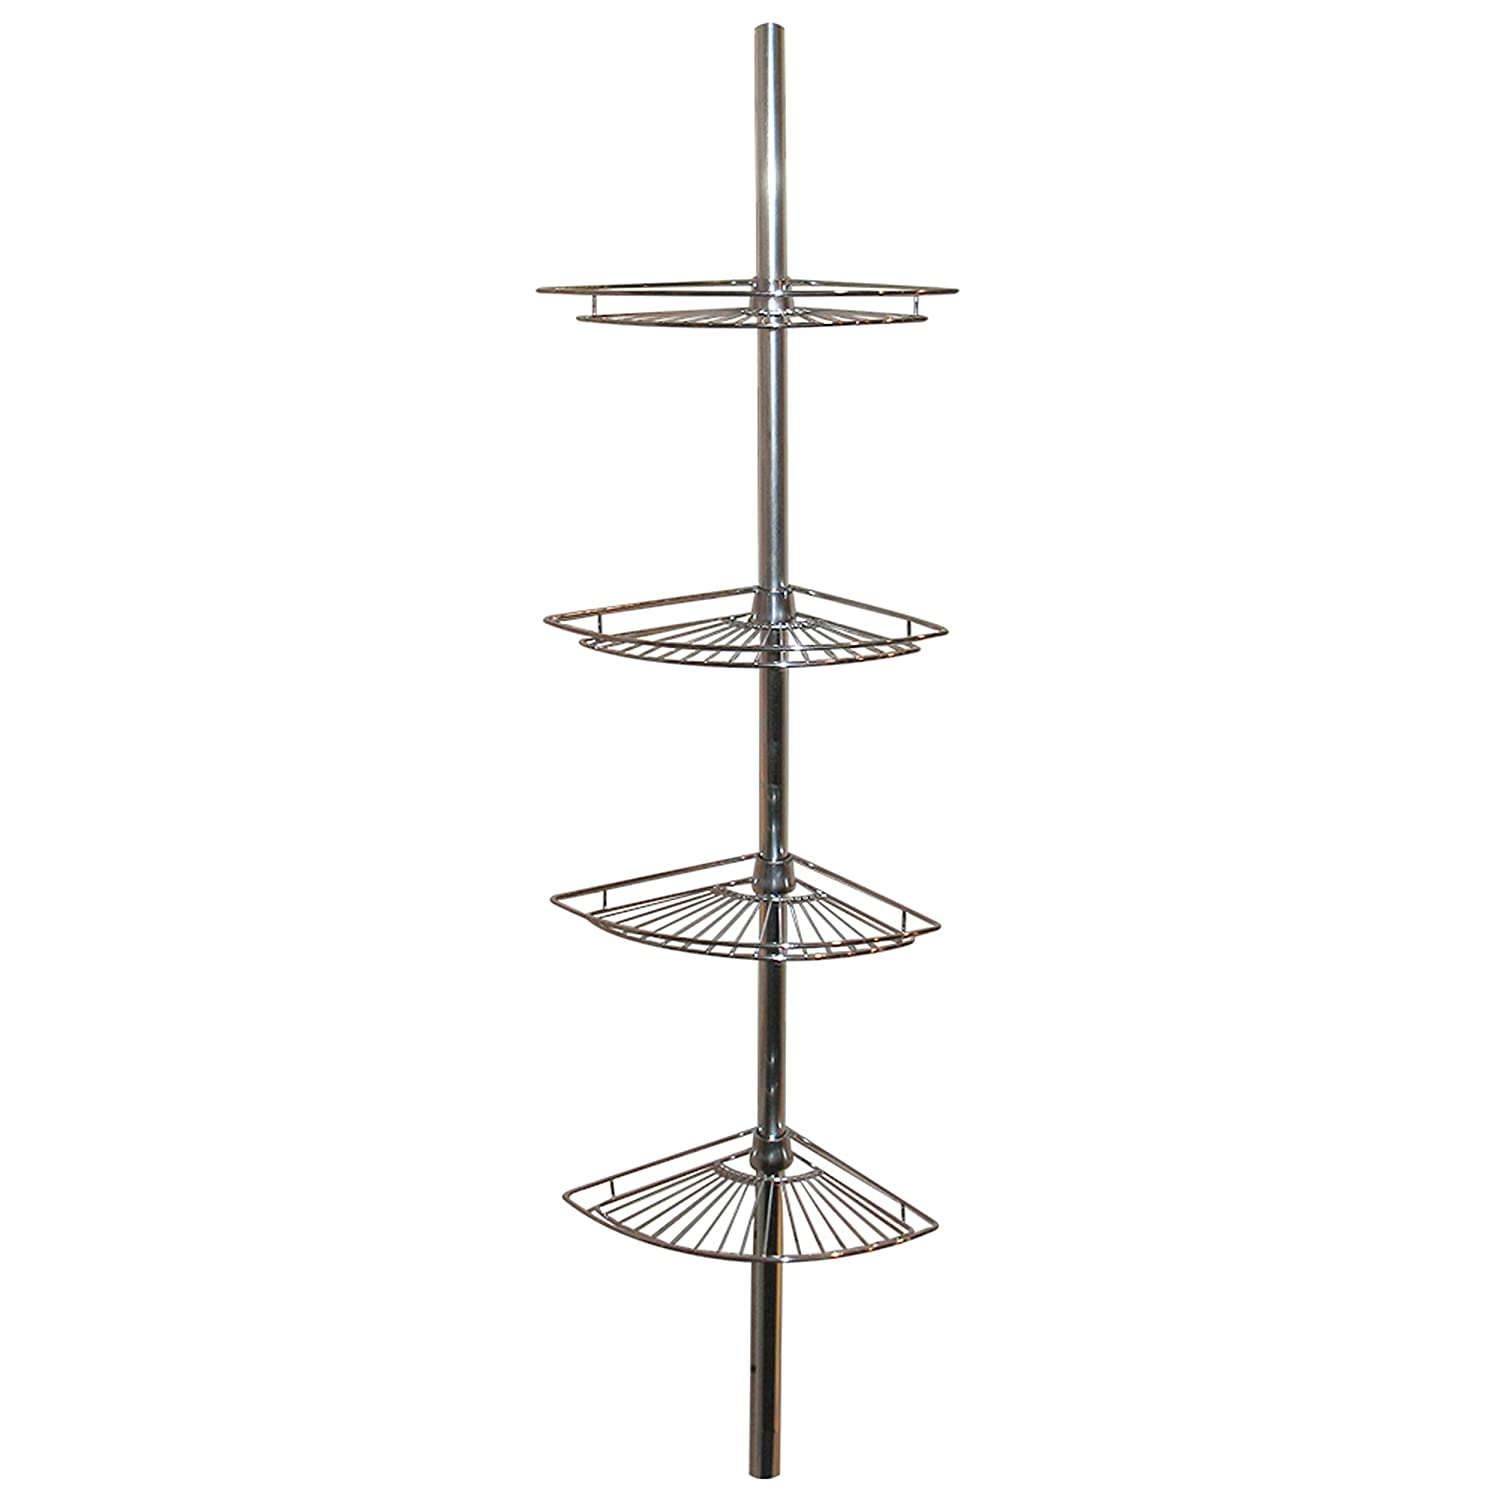 Amazon.com: Zenna Home 2114S, Tension Corner Pole Caddy, Chrome ...